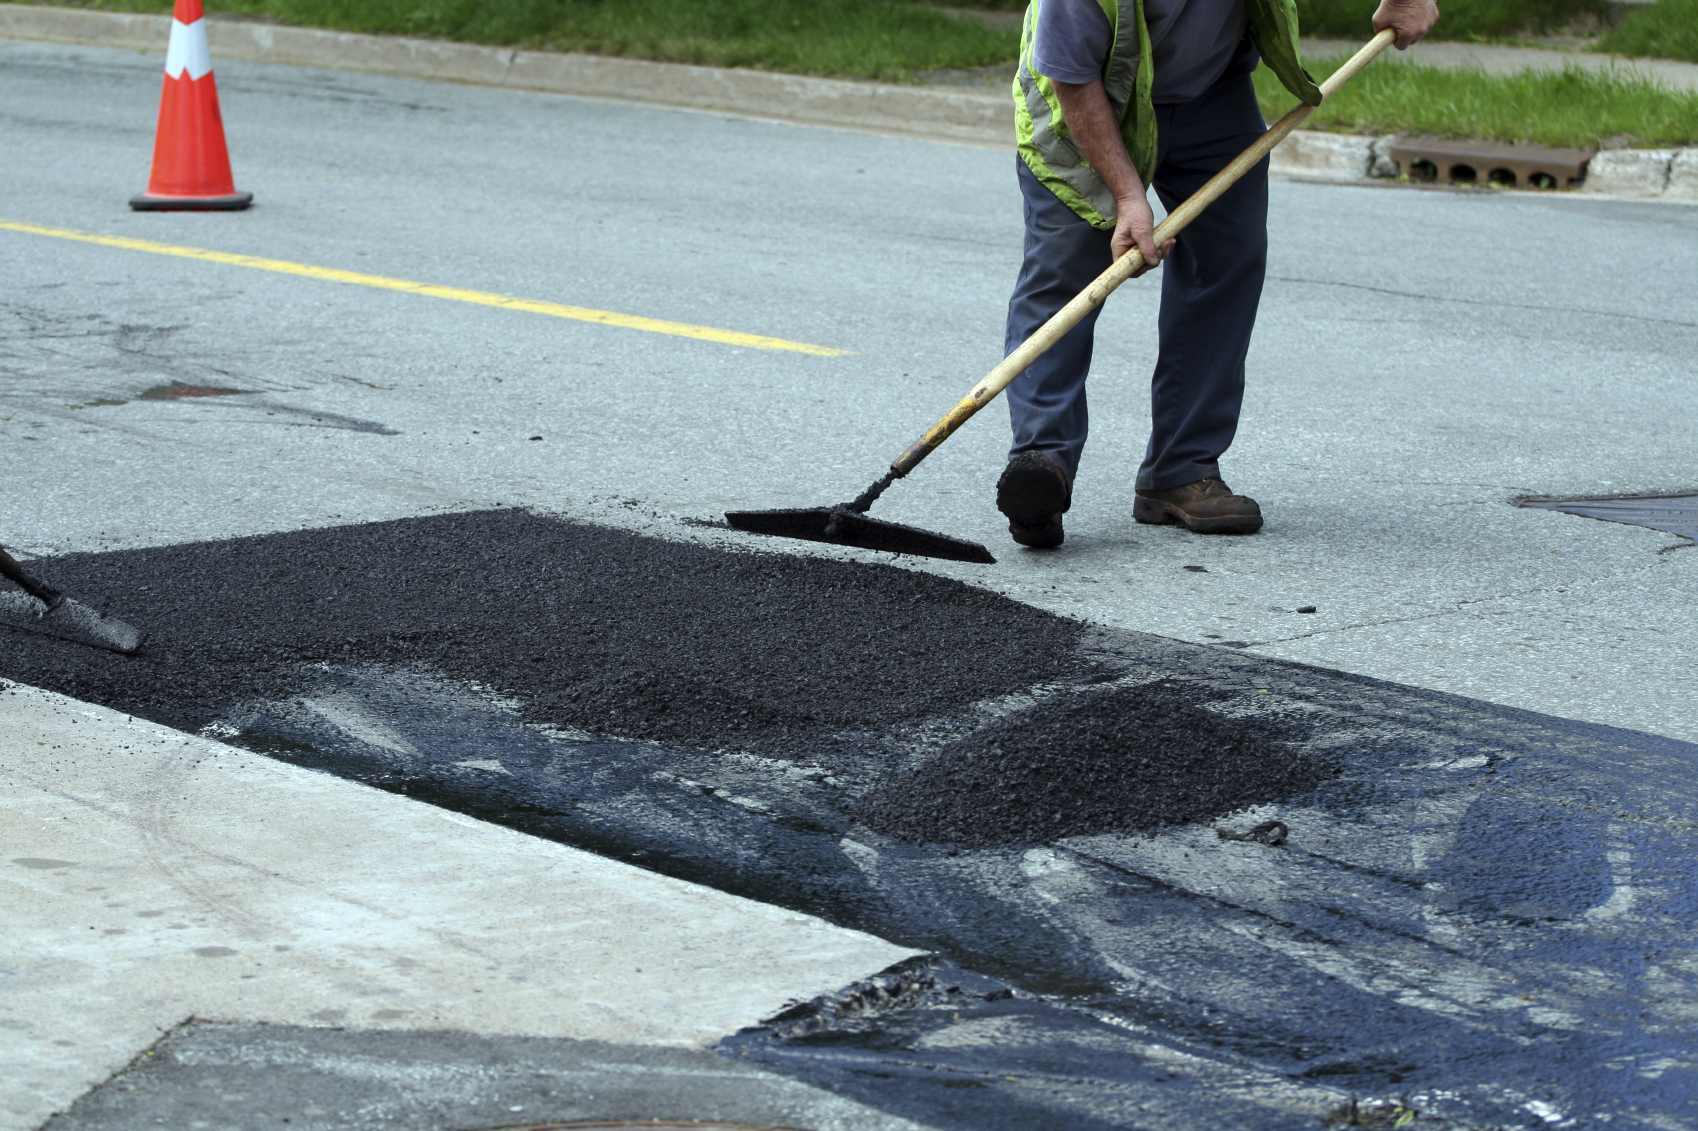 How To Choose: Asphalt Overlay Or Complete Asphalt Replacement?